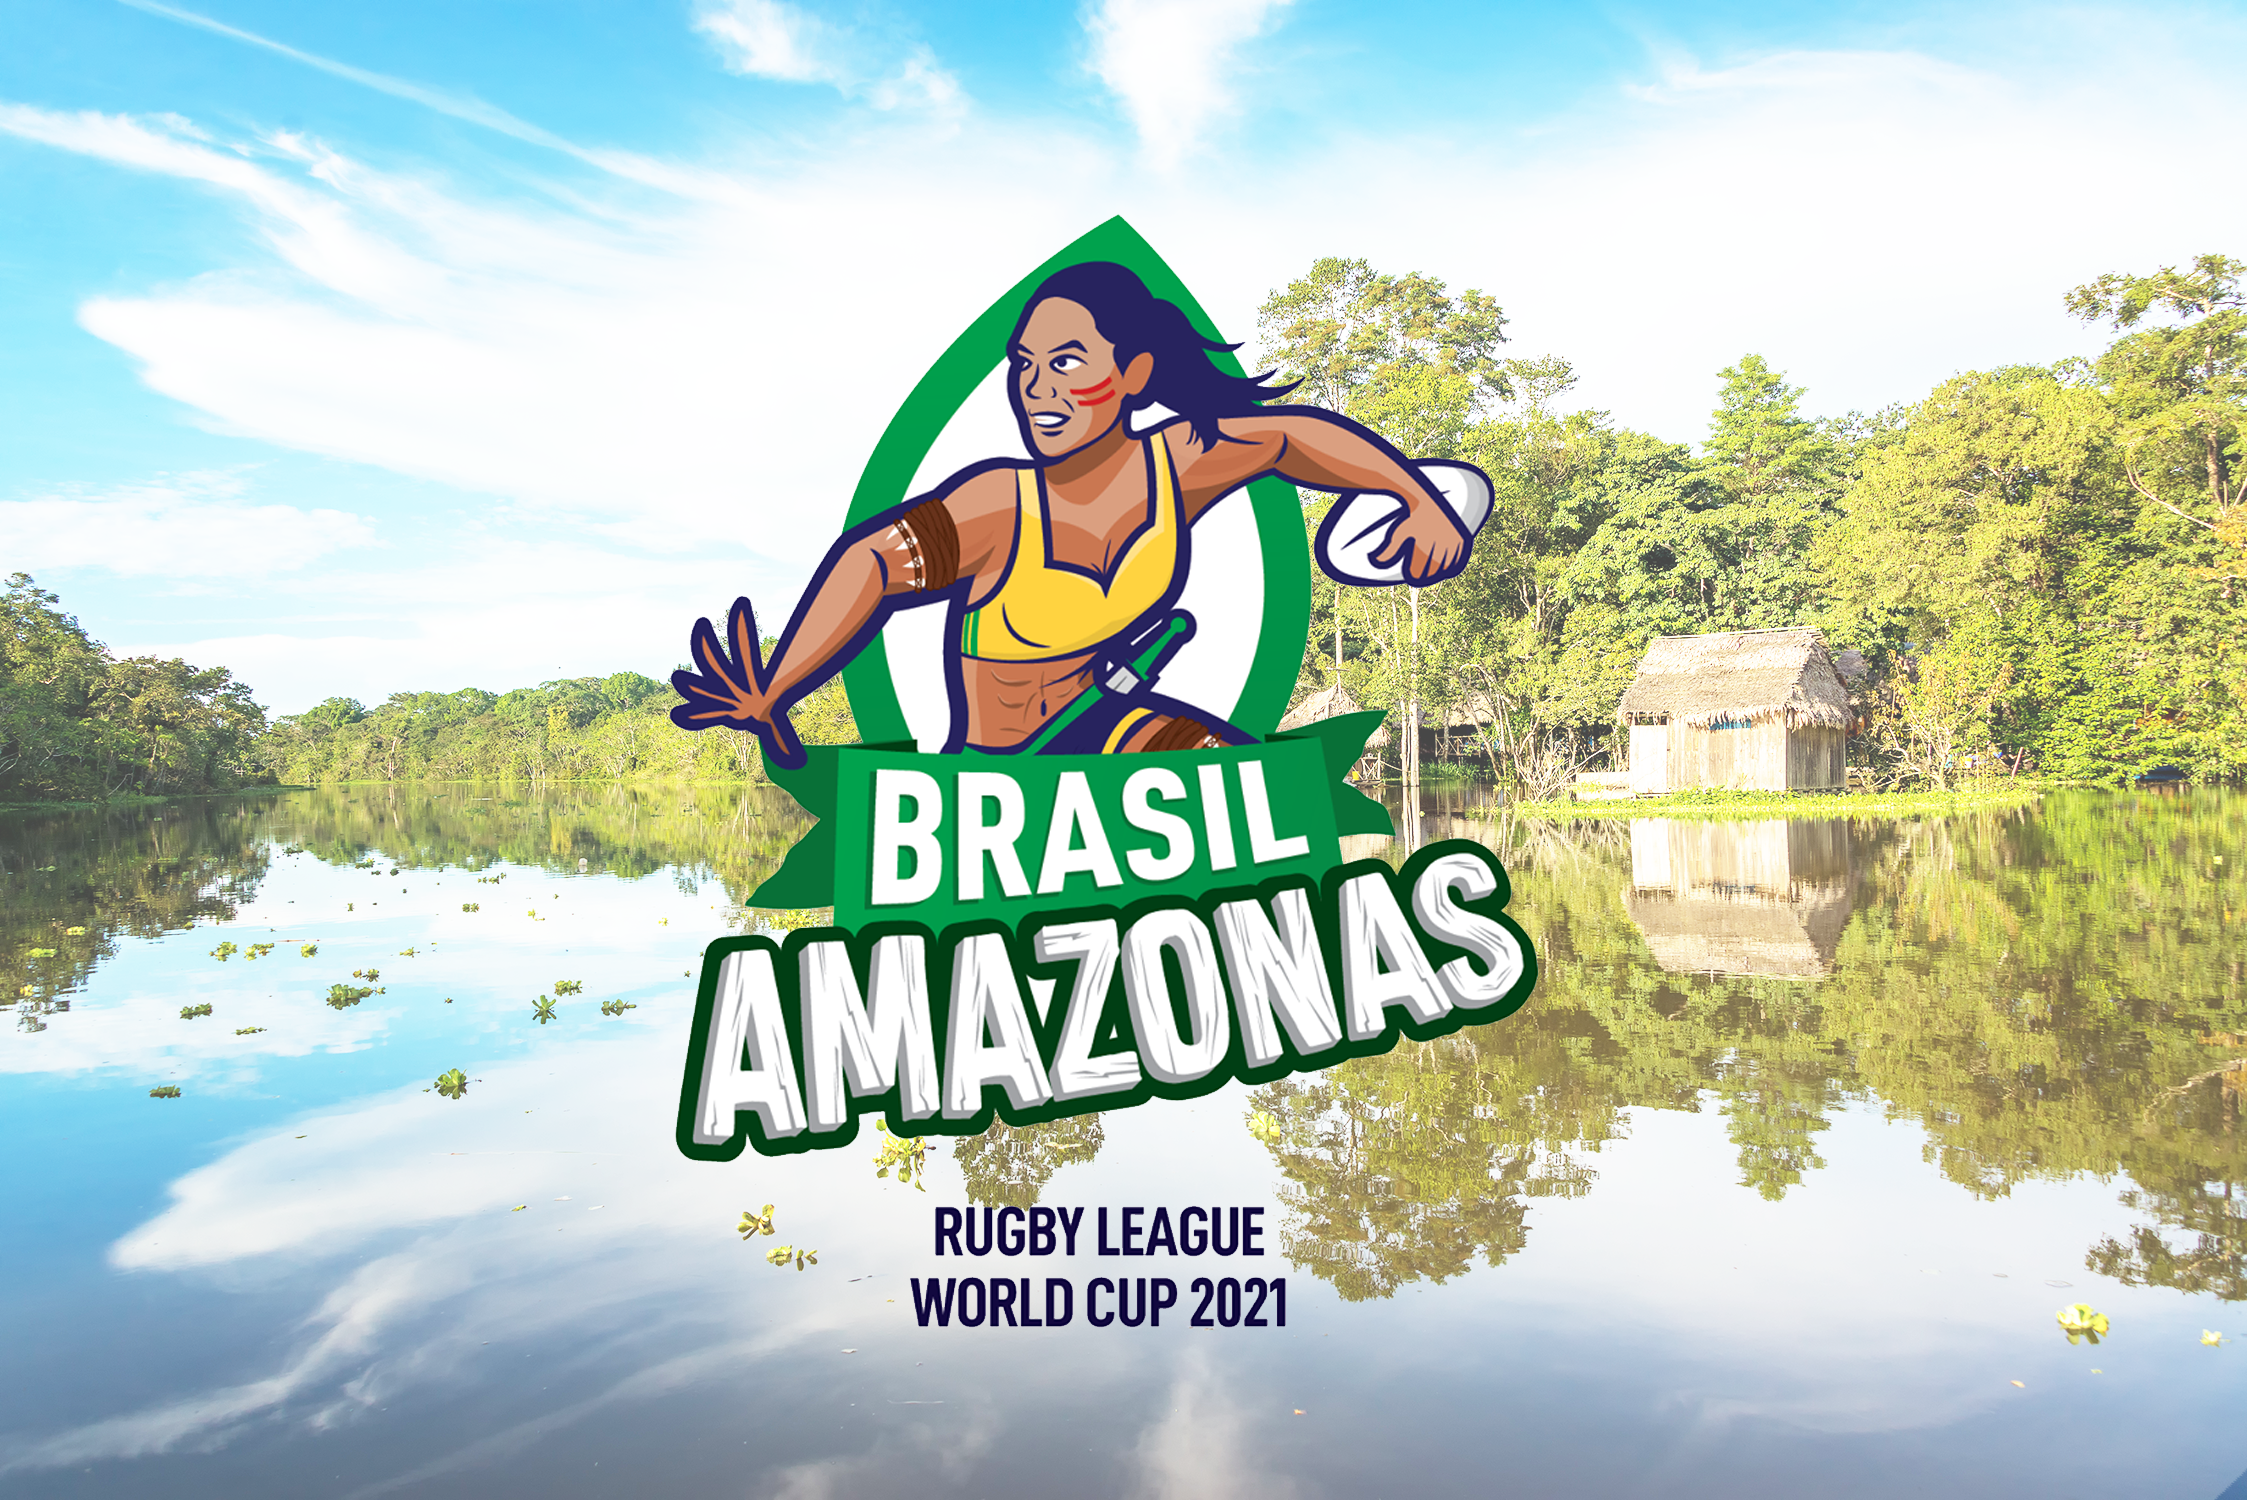 Brazil unveil logo and mascot for 2021 Women's World Cup